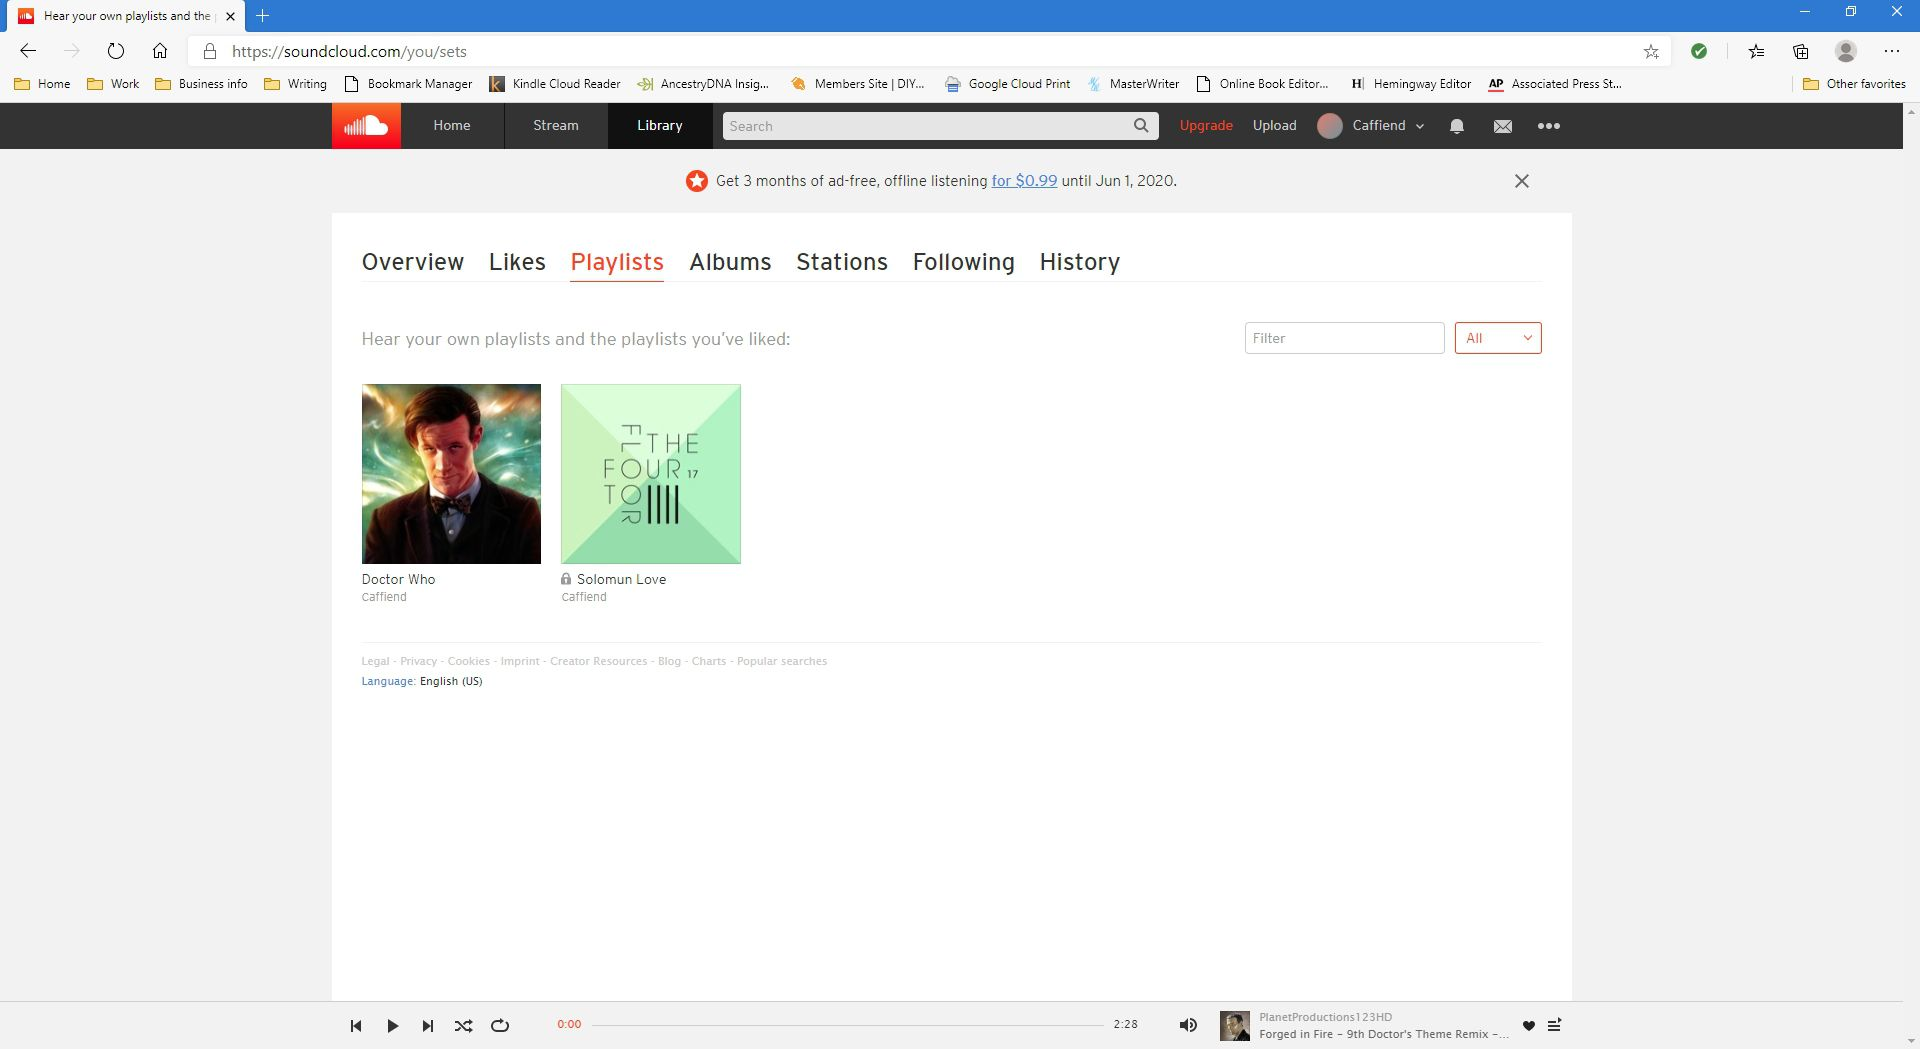 Playlists displayed in SoundCloud website.